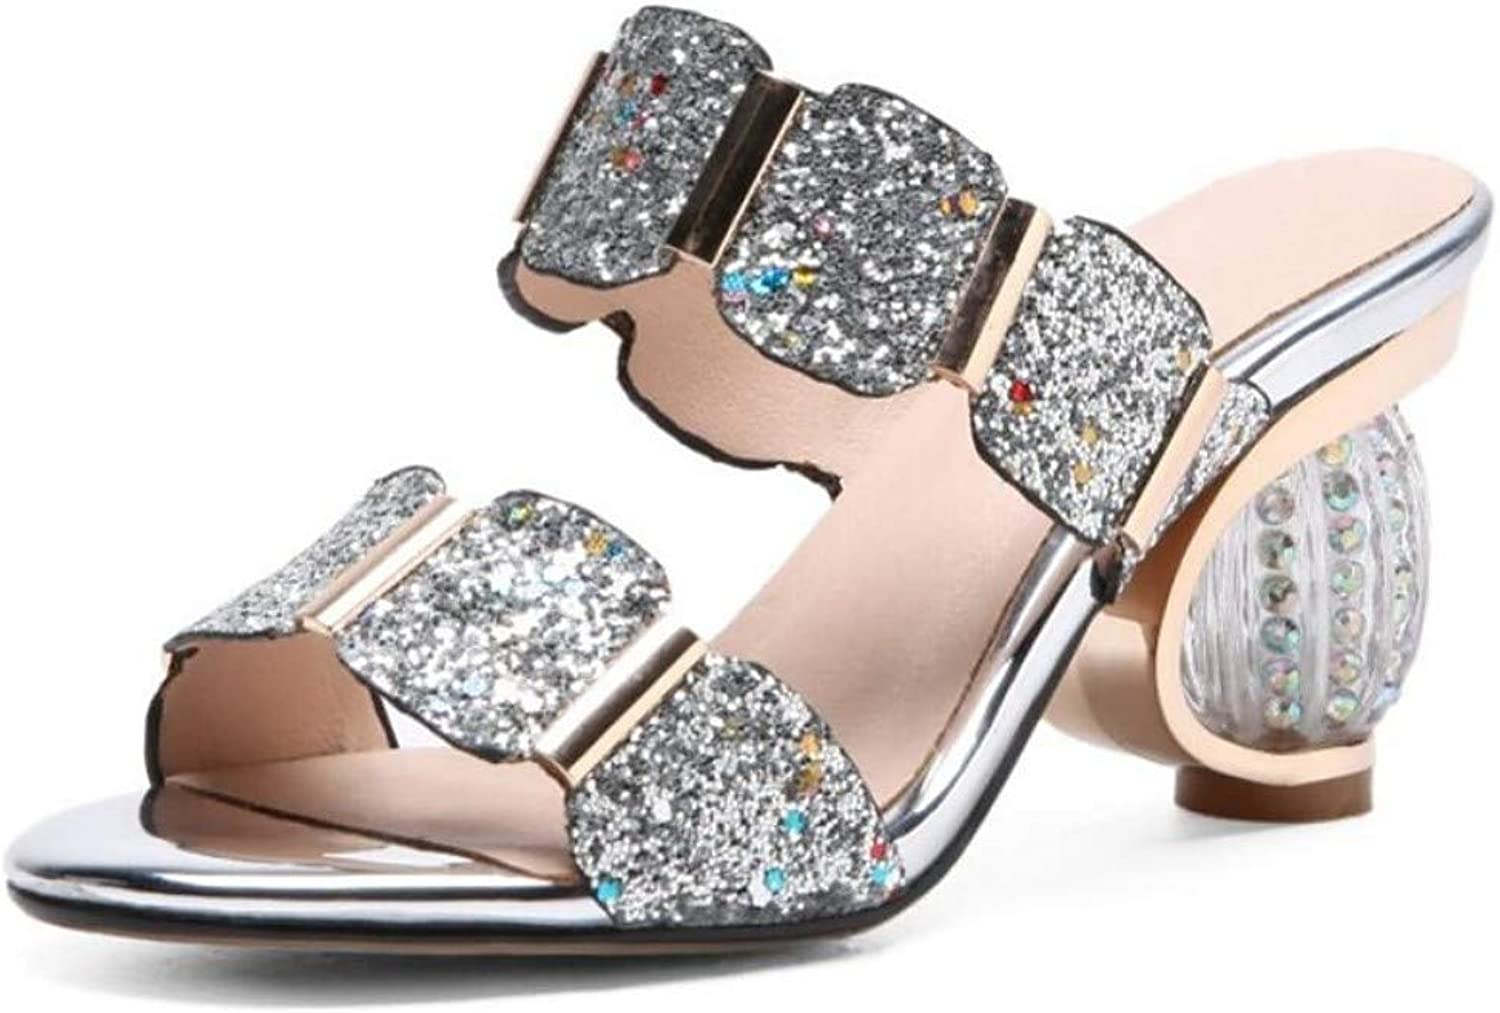 IWlxz Women's Microfiber Summer Sweet Minimalism Sandals Chunky Heel Open Toe Sequin Sparkling Glitter gold Black Silver